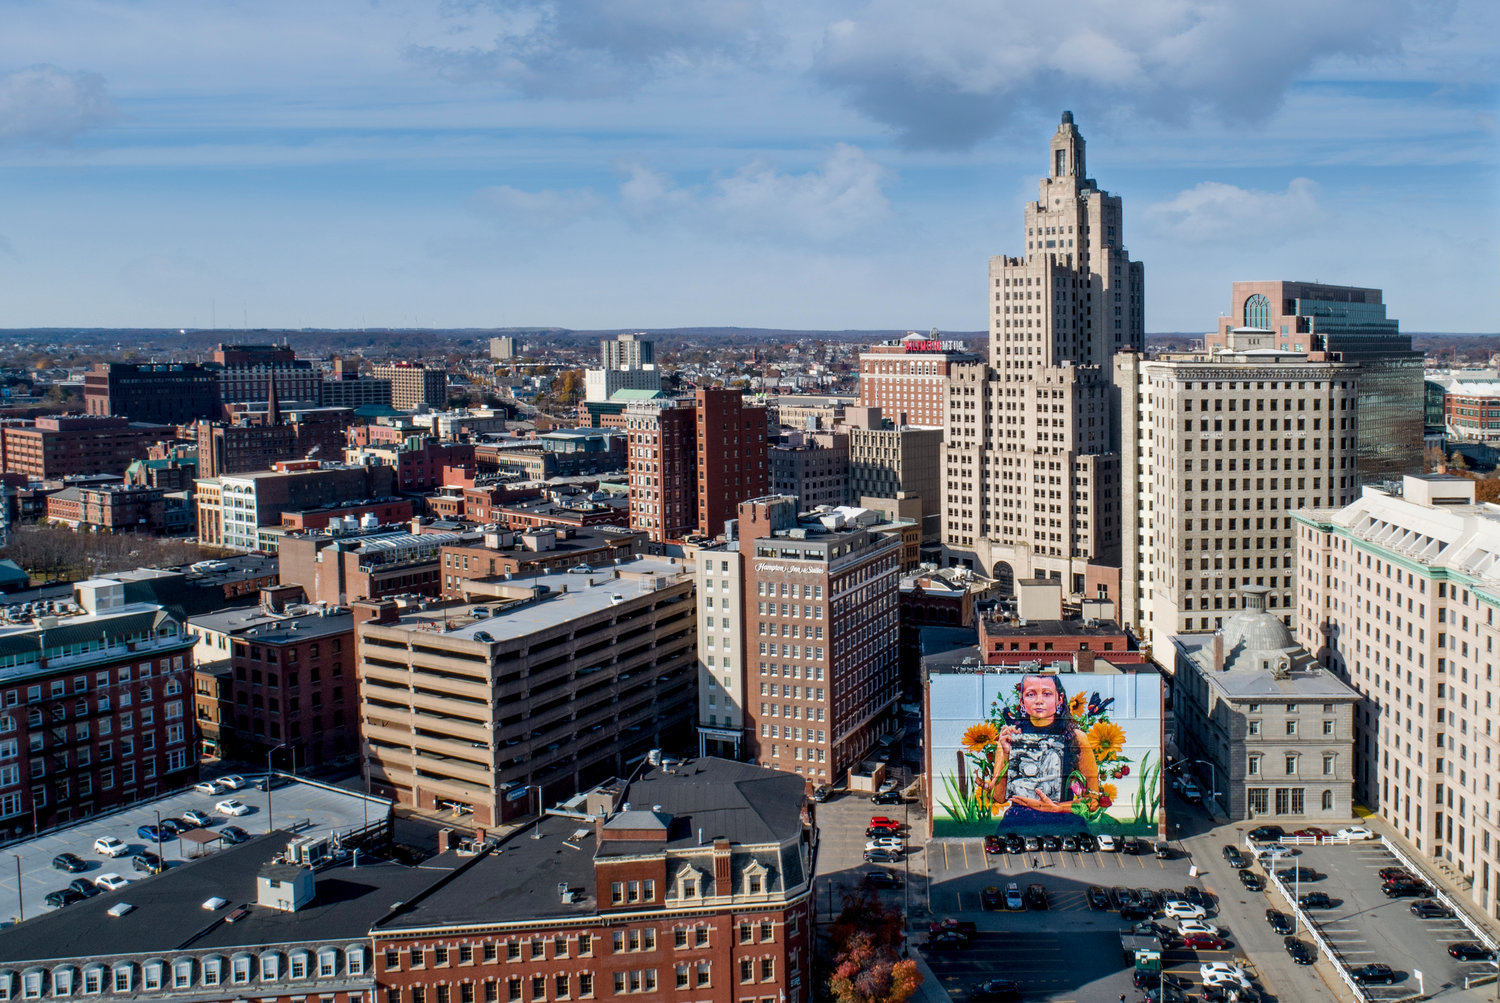 Providence is worthy of a full vacation in its own right, but if your schedule only leaves room for a single day trip, here are some must-see highlights.